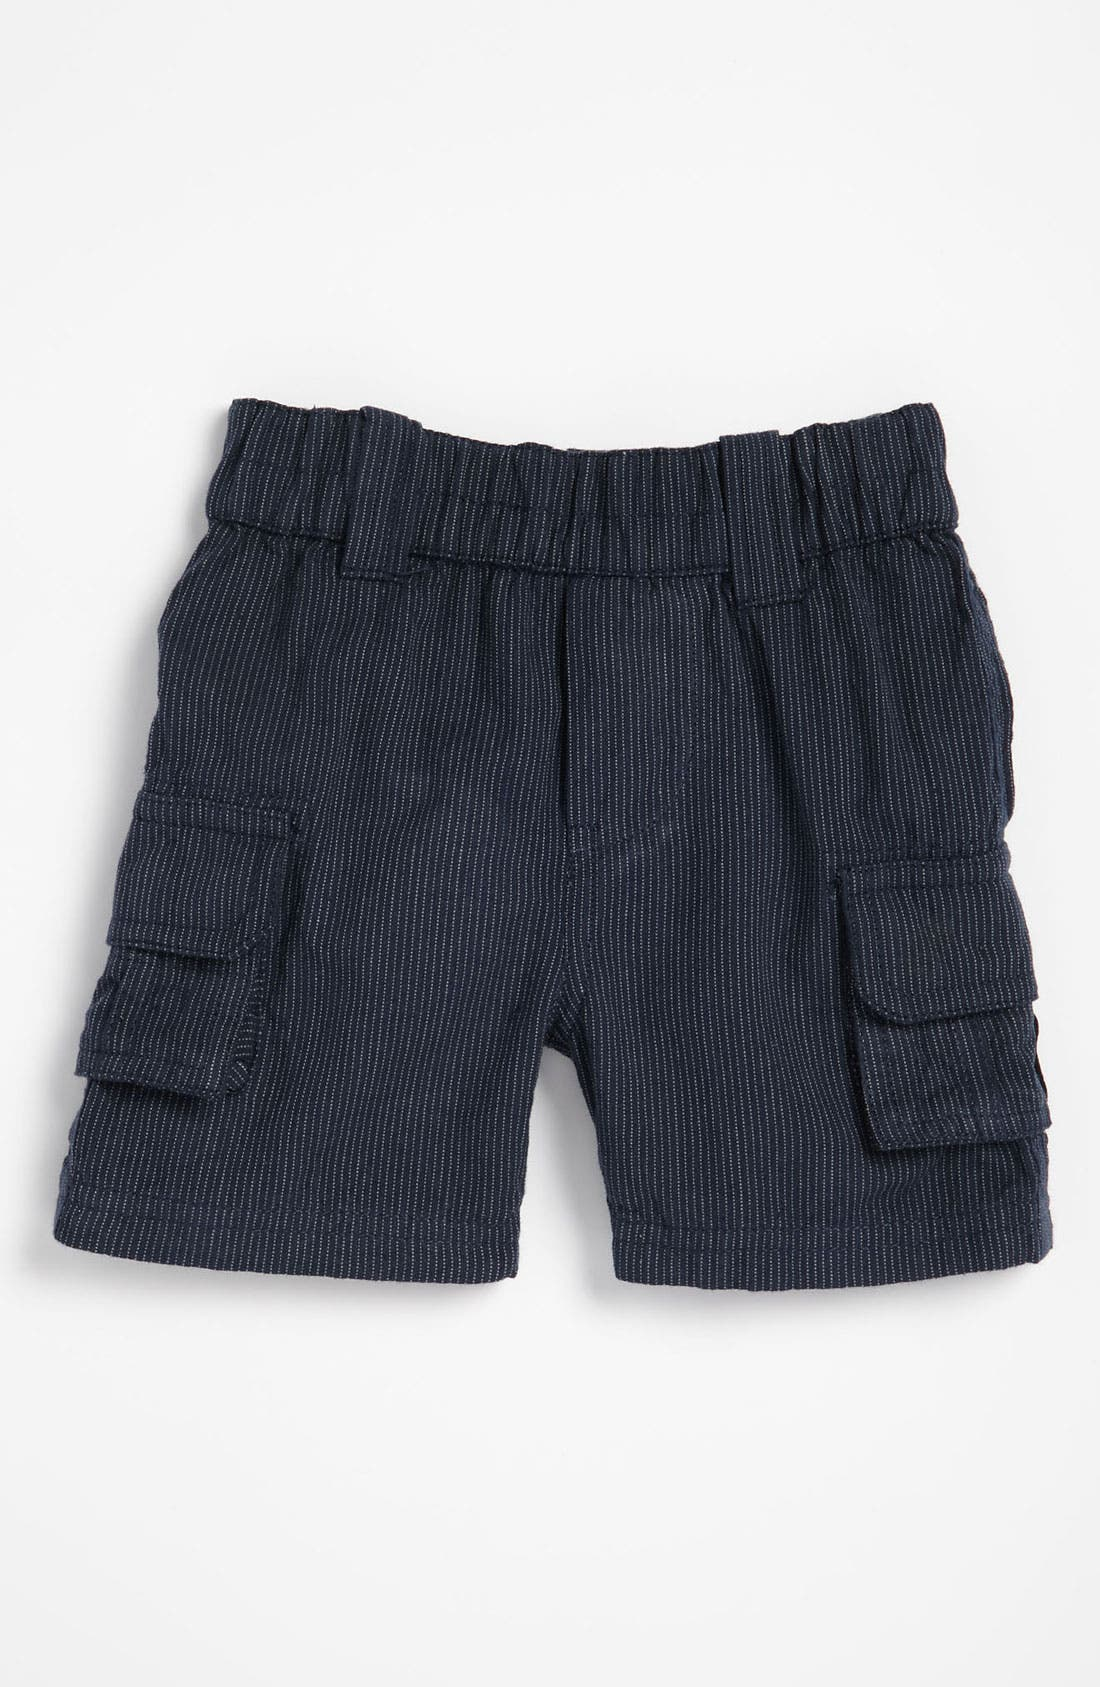 Alternate Image 1 Selected - Peek Pinstripe Shorts (Infant)